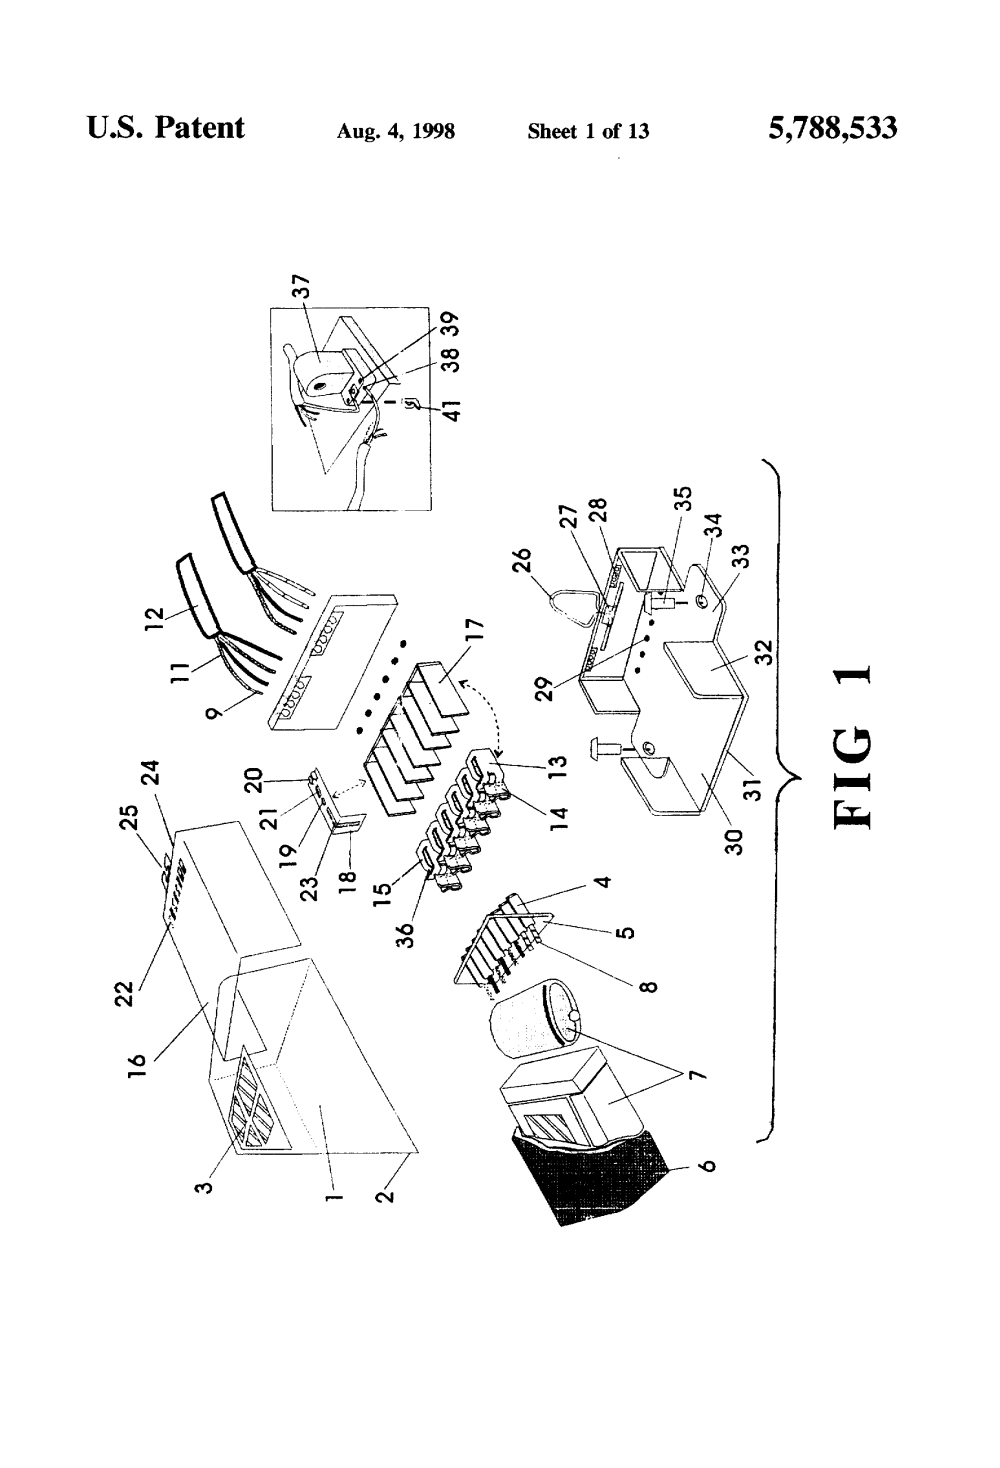 medium resolution of patent us5788533 ballast system for interconnection with 2001 workhorse heater controls wiring diagram wall lamp ballast wiring